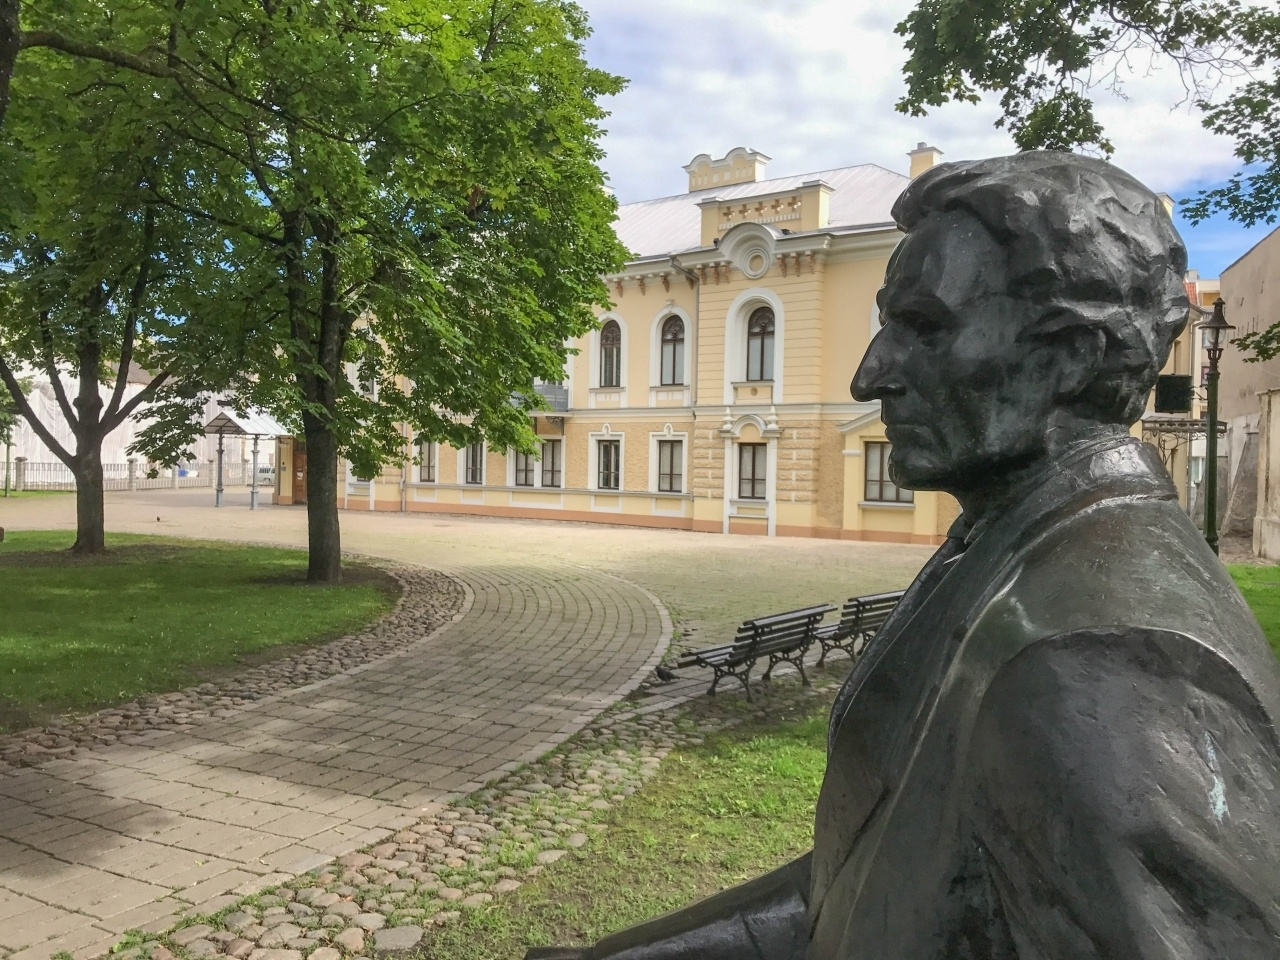 Kaunas tourism will state that the Kaunas Presidential Palace is a must-see sight.